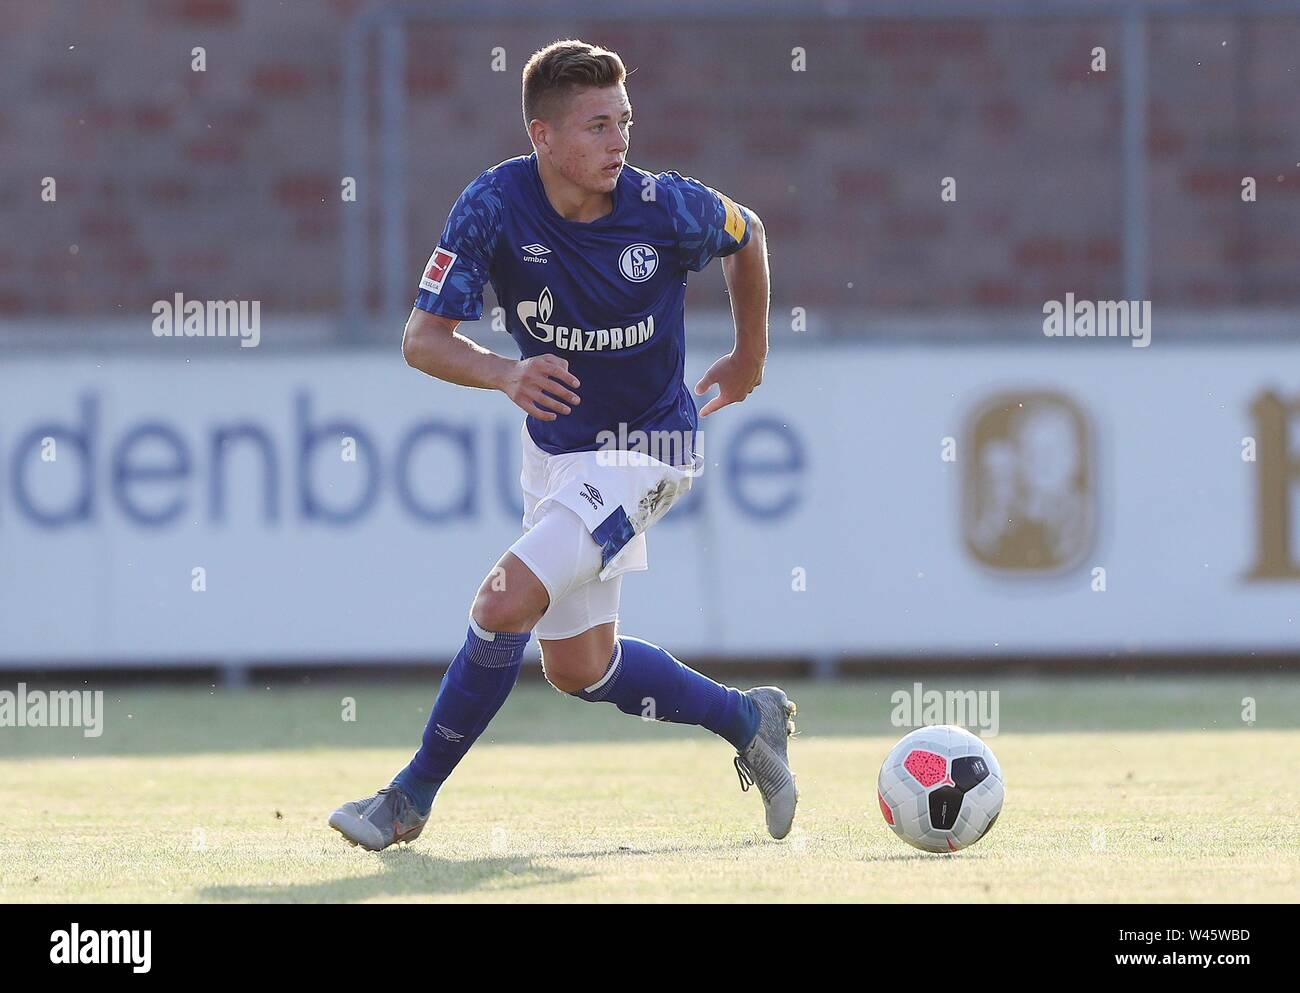 Lotte, Deutschland. 19th July, 2019. firo: 19.07.2019, football, 1.Bundesliga, season 2019/2020, friendly match, FC Schalke 04 - Norwich City Sandro PLECHATY, Schalke, single action | usage worldwide Credit: dpa/Alamy Live News - Stock Image